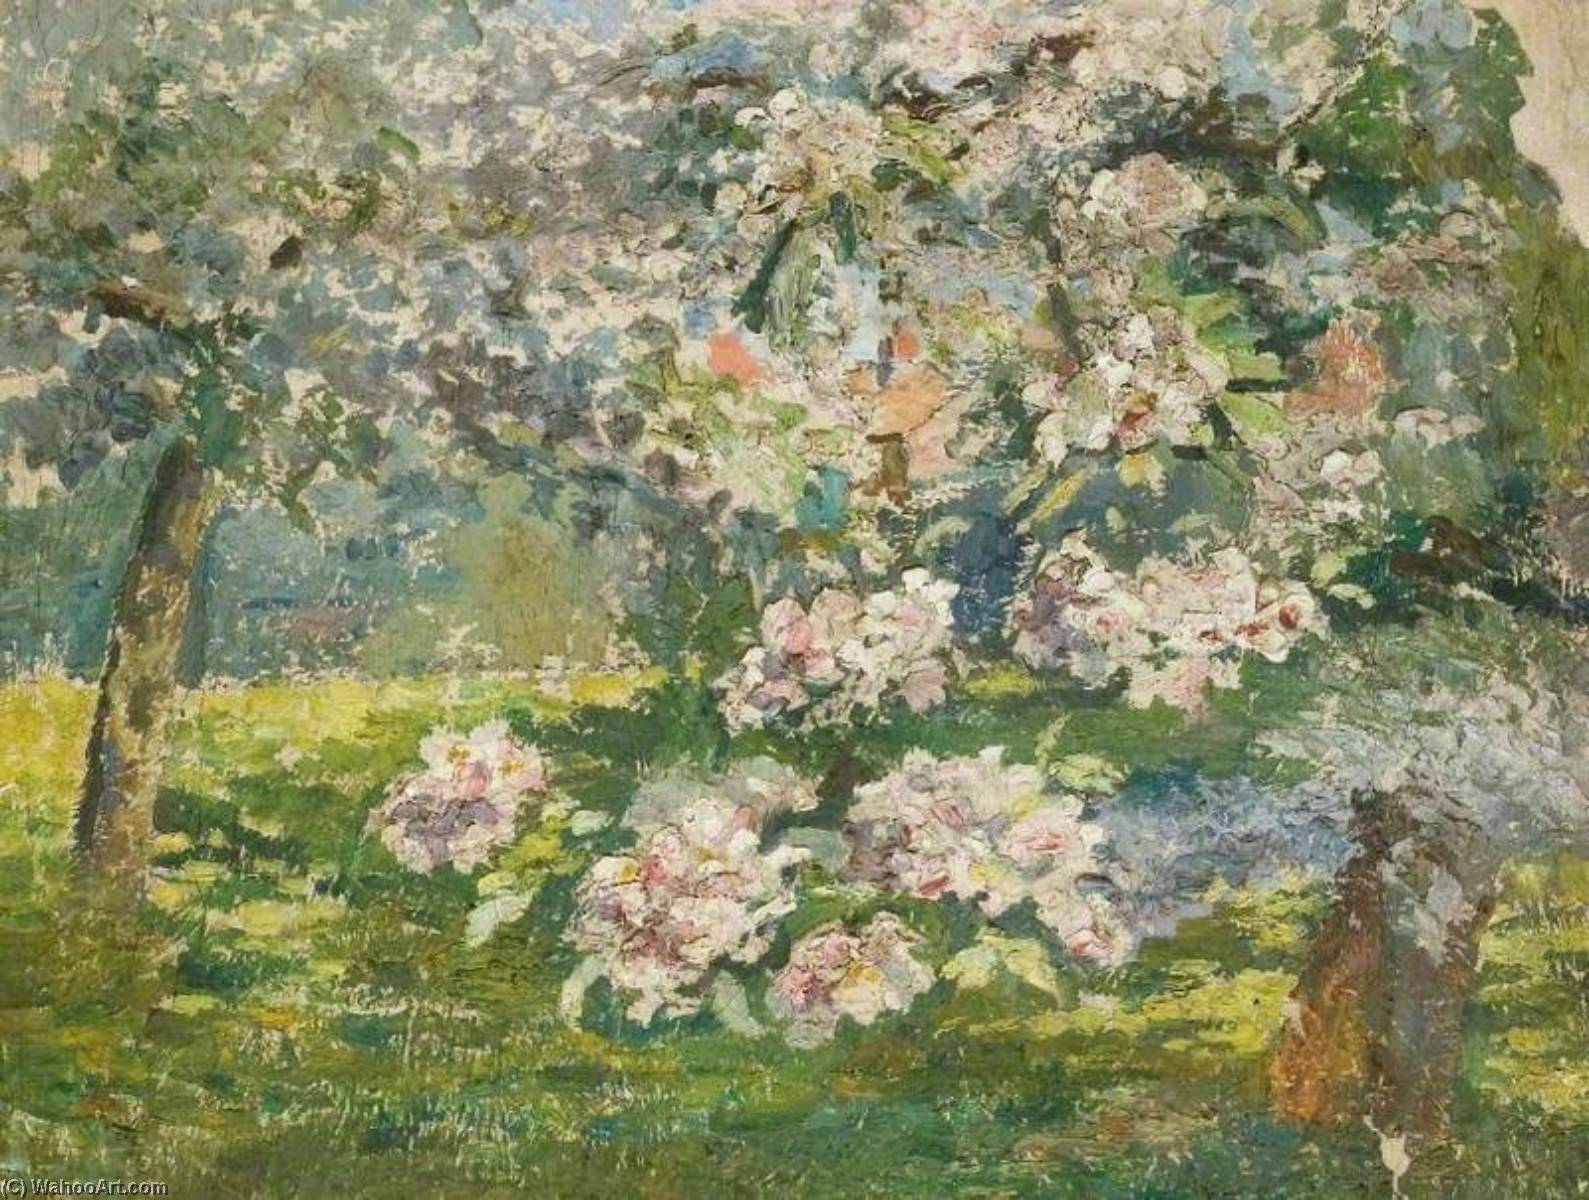 Apple Blossom in the Garden at Kingsley, Bushey, Oil On Canvas by Lucy Marguerite Frobisher